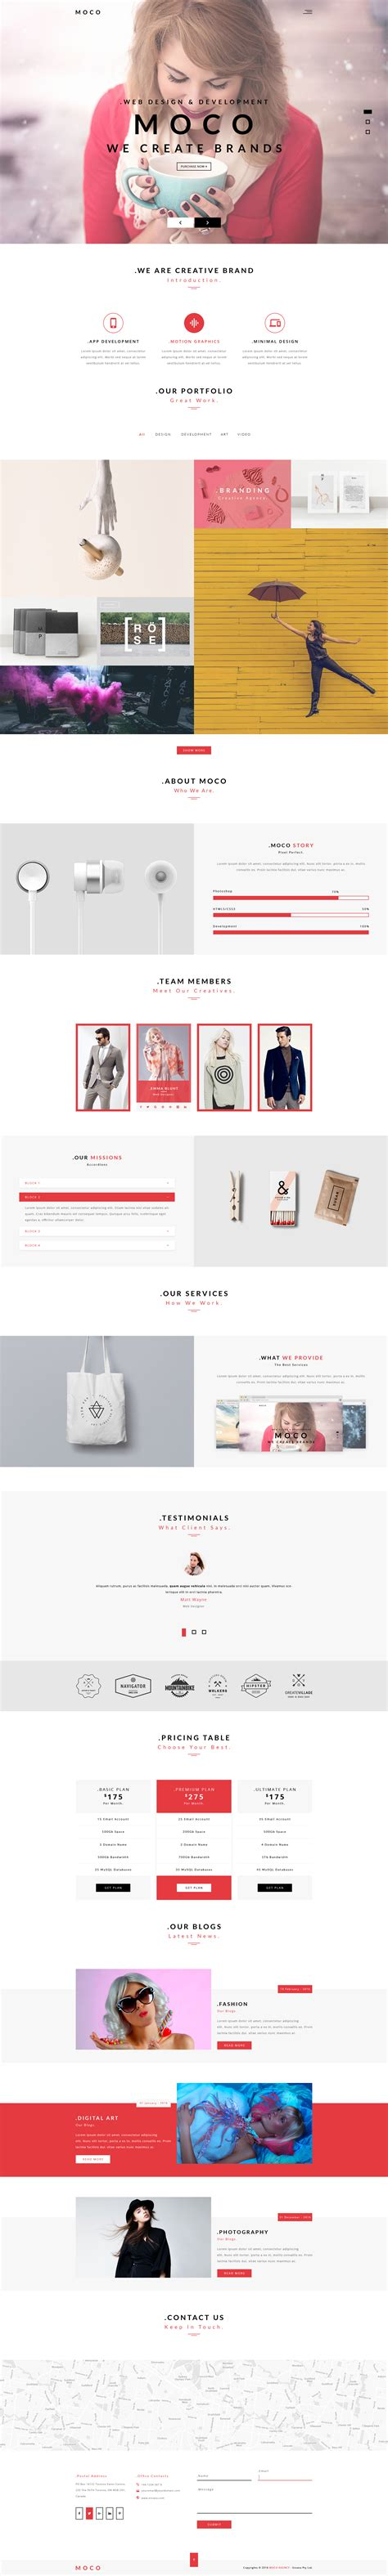 The Agency V1 4 Creative One Page Agency Theme moco agency creative one page template by designsninja themeforest